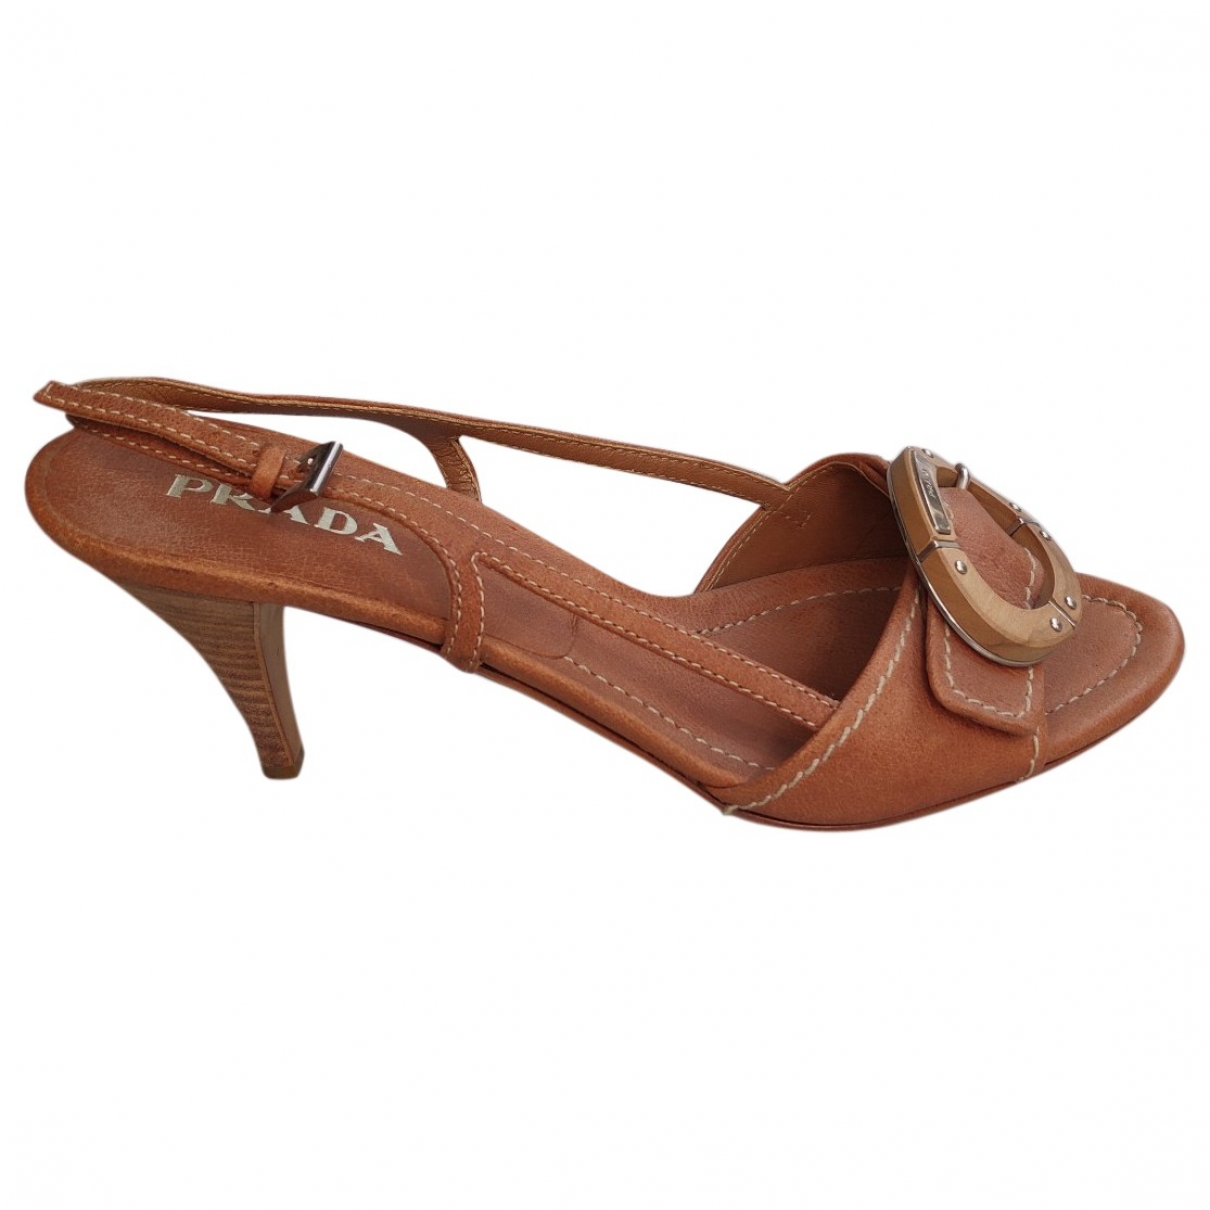 Prada \N Camel Leather Sandals for Women 37.5 EU